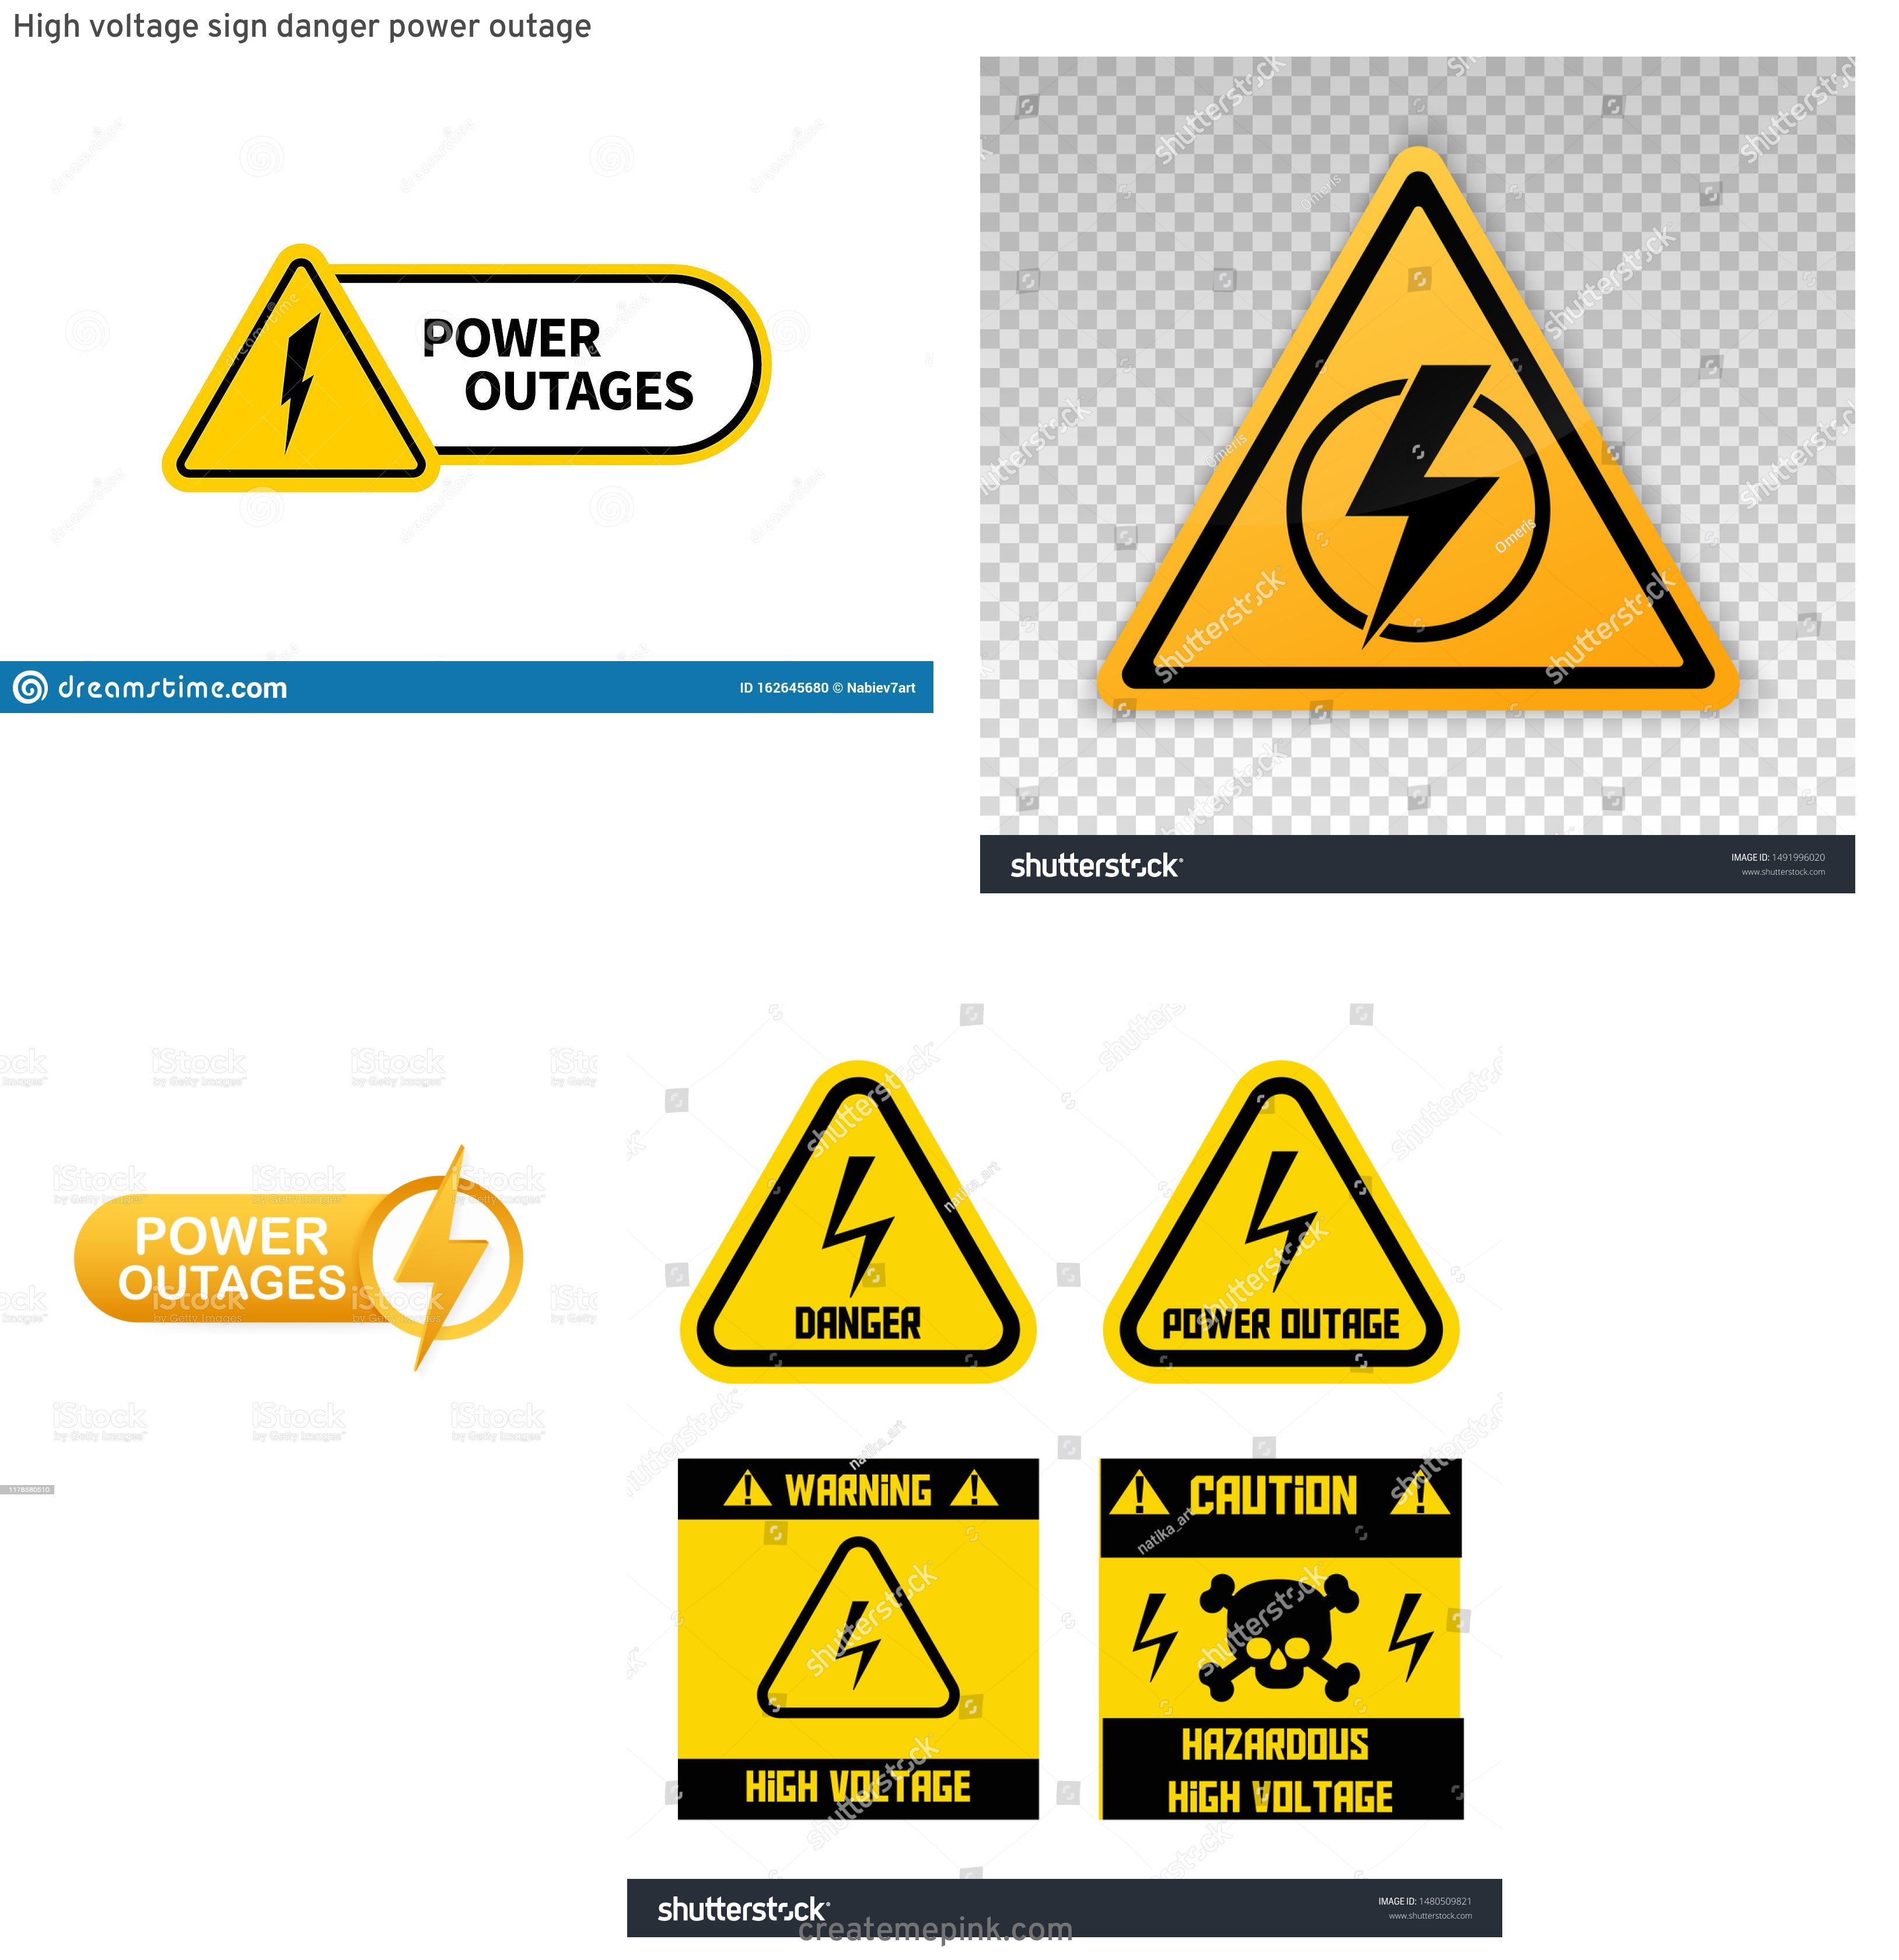 Vector Power Outage: High Voltage Sign Danger Power Outage